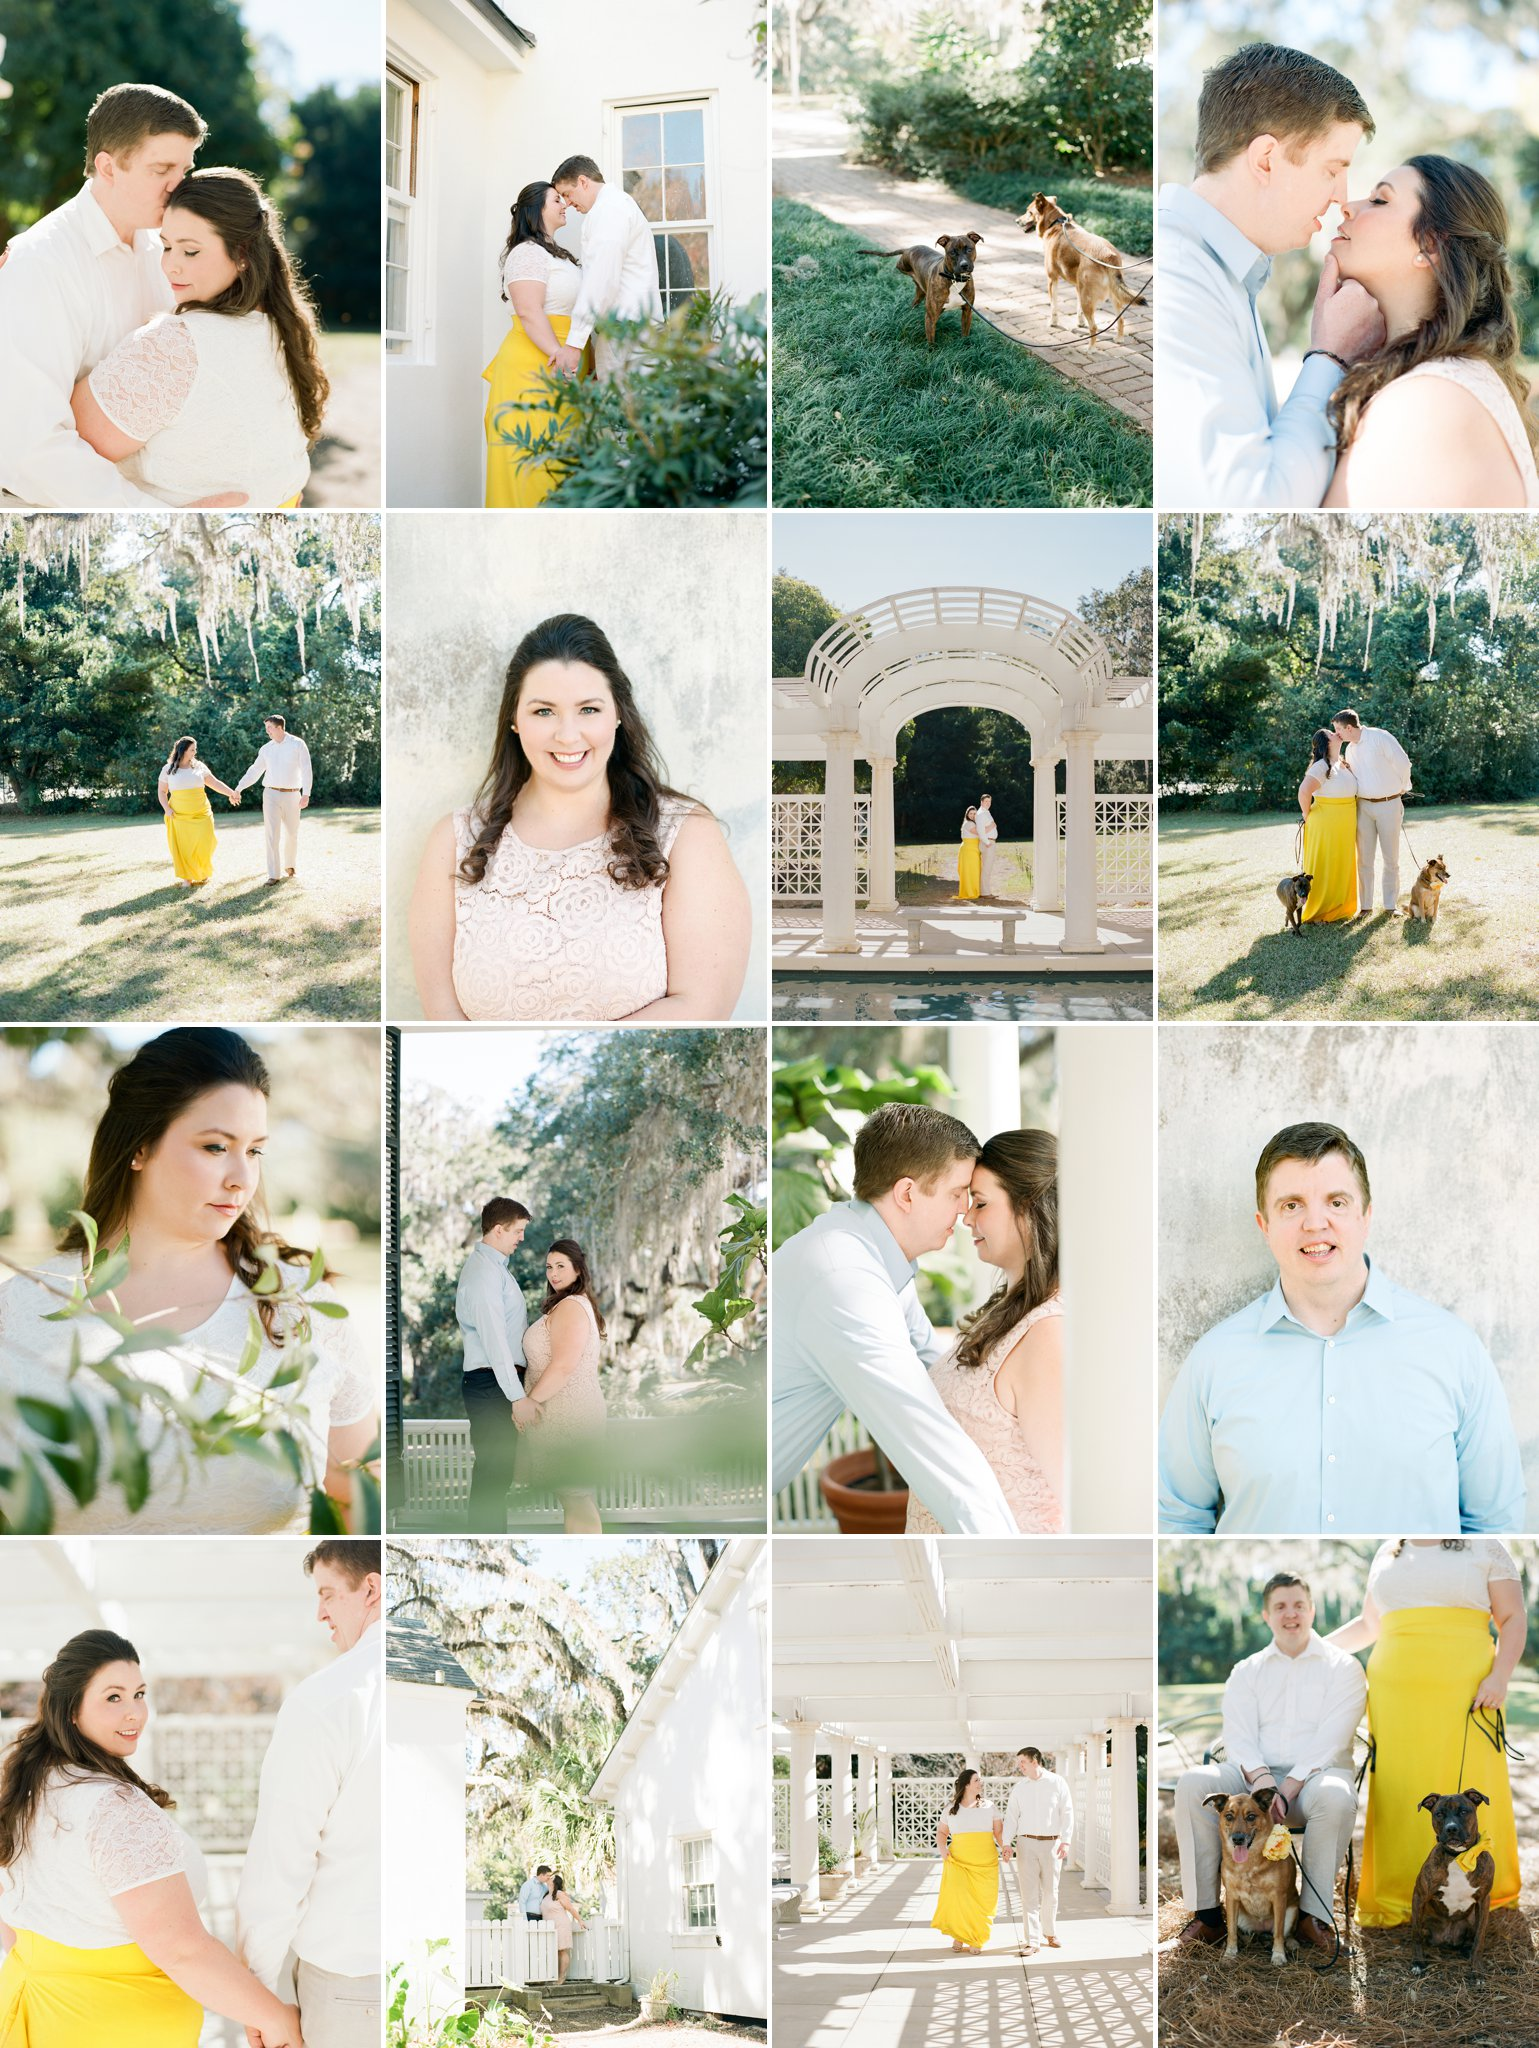 st augustine wedding photographer shannon griffin photography_0009.jpg